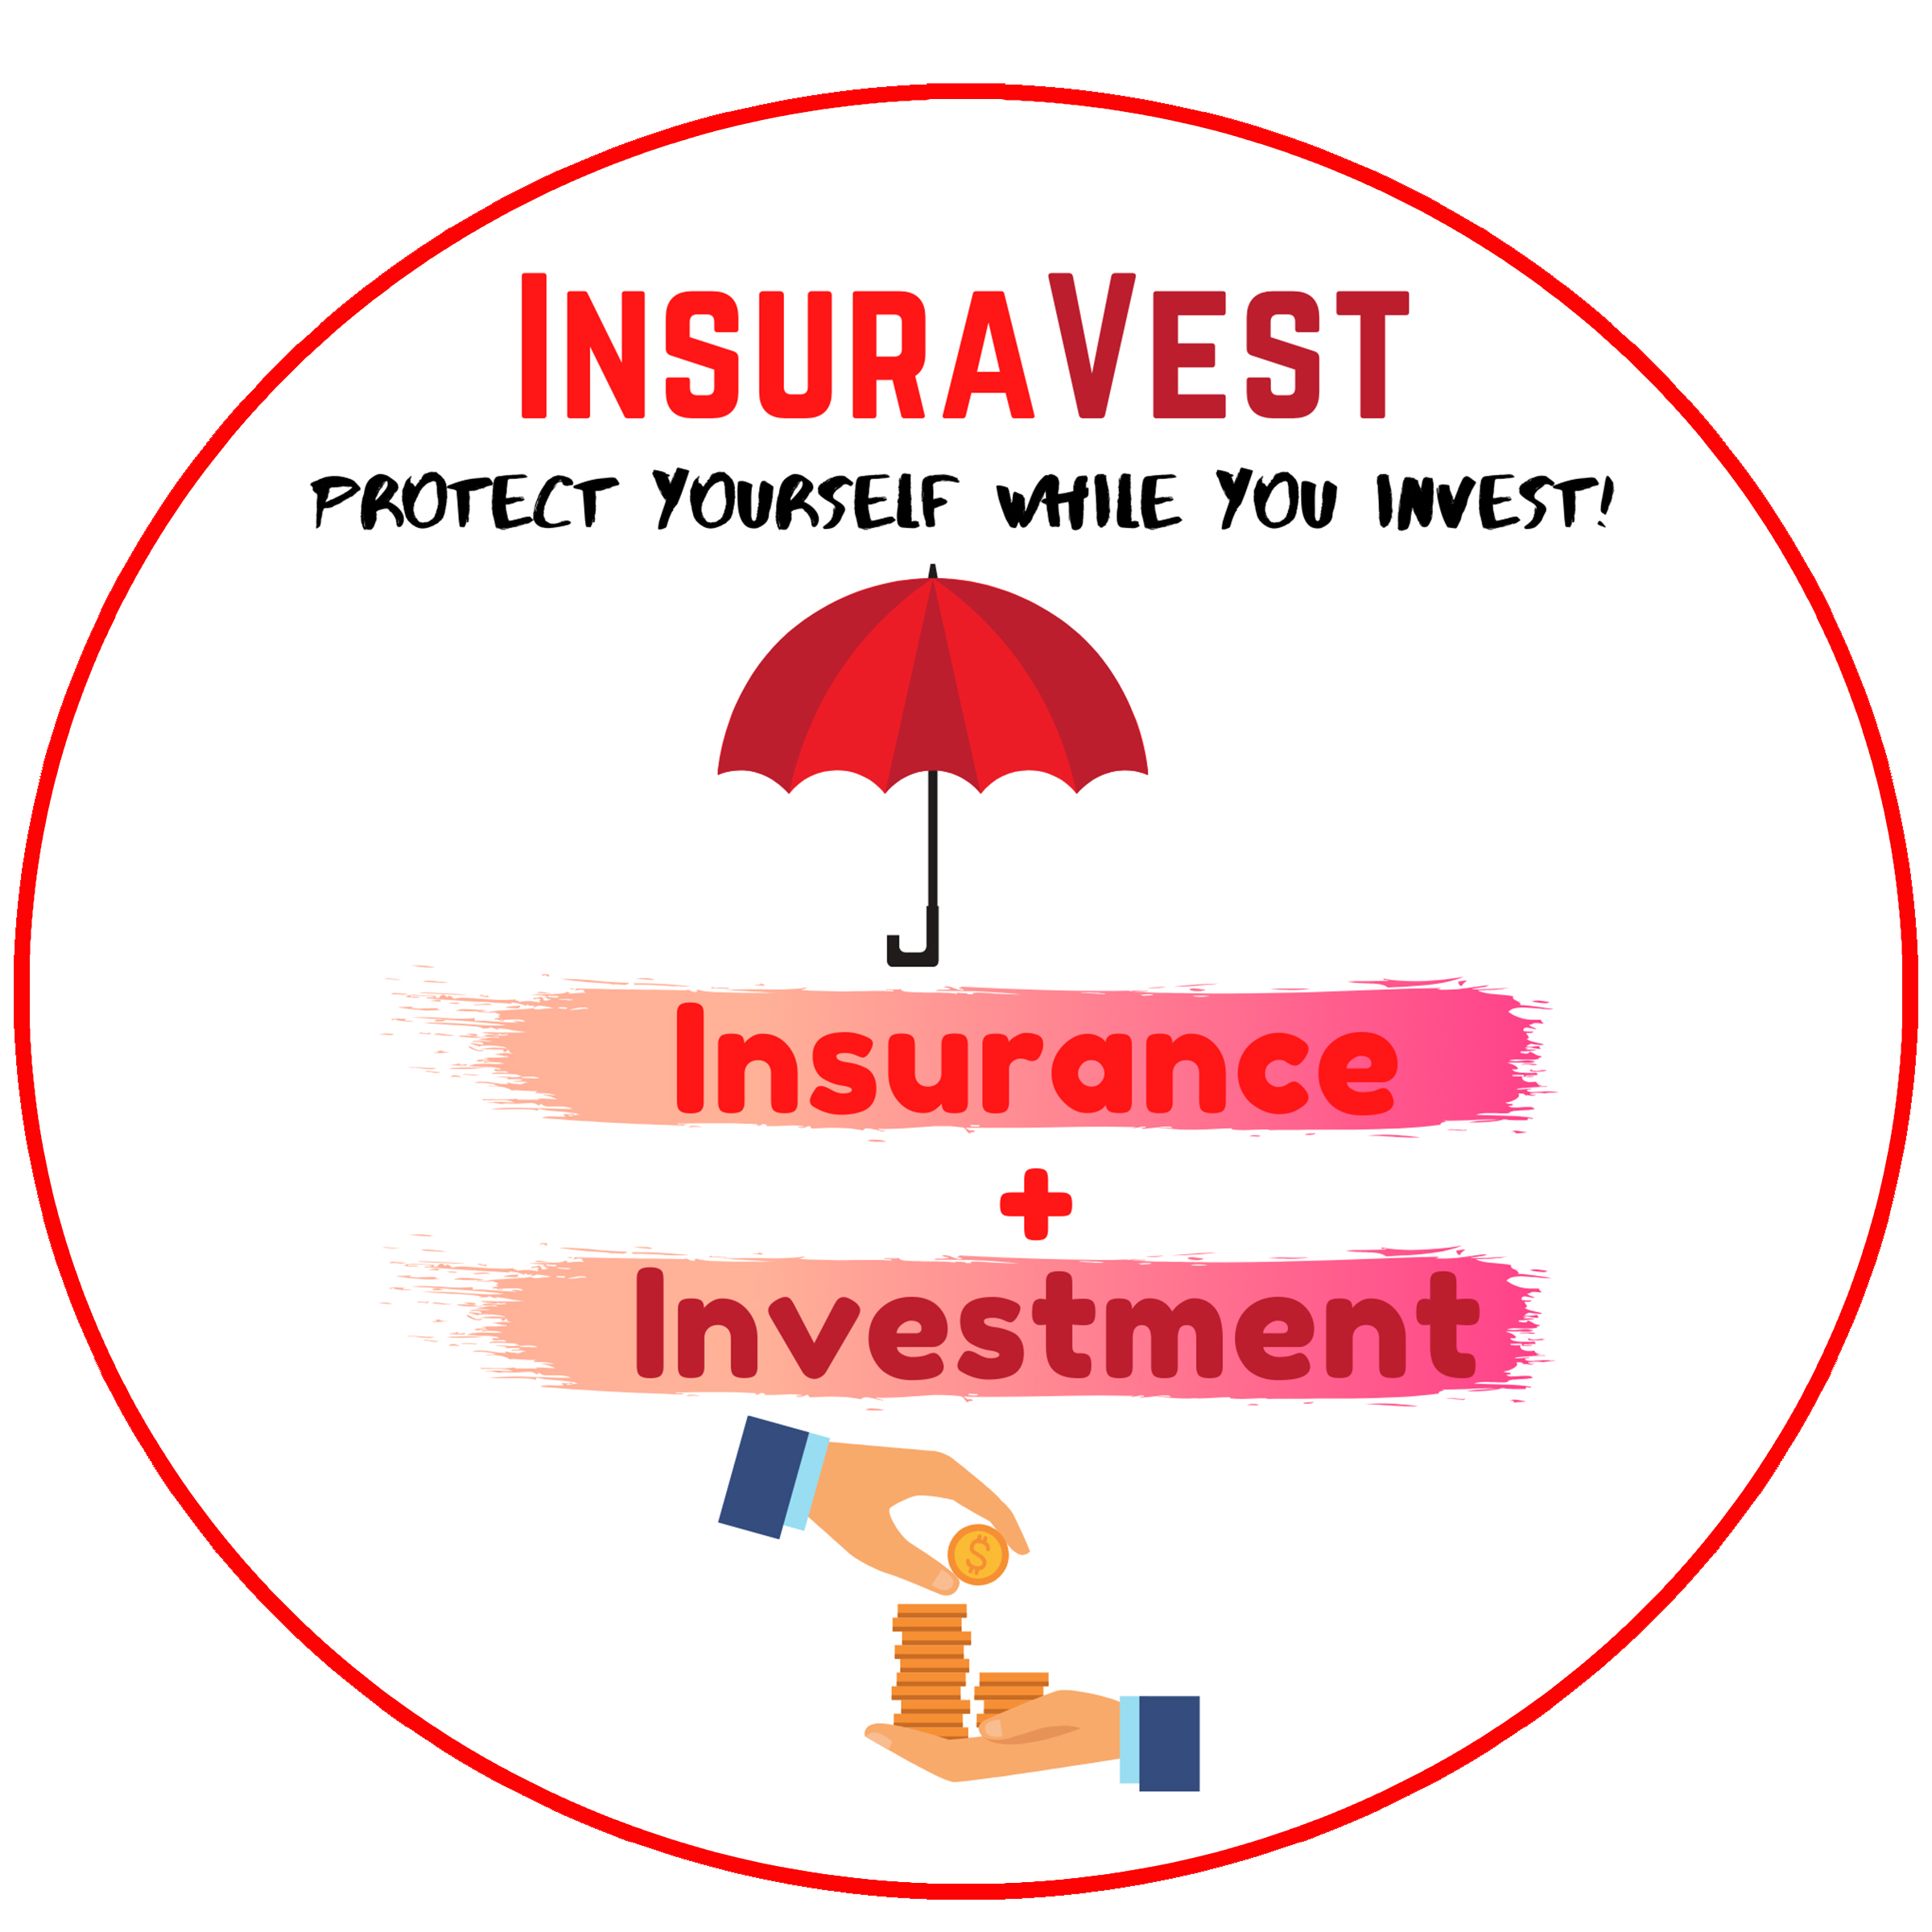 Insuravest Life Insurance Quotes Insurance Investments Uk Quote